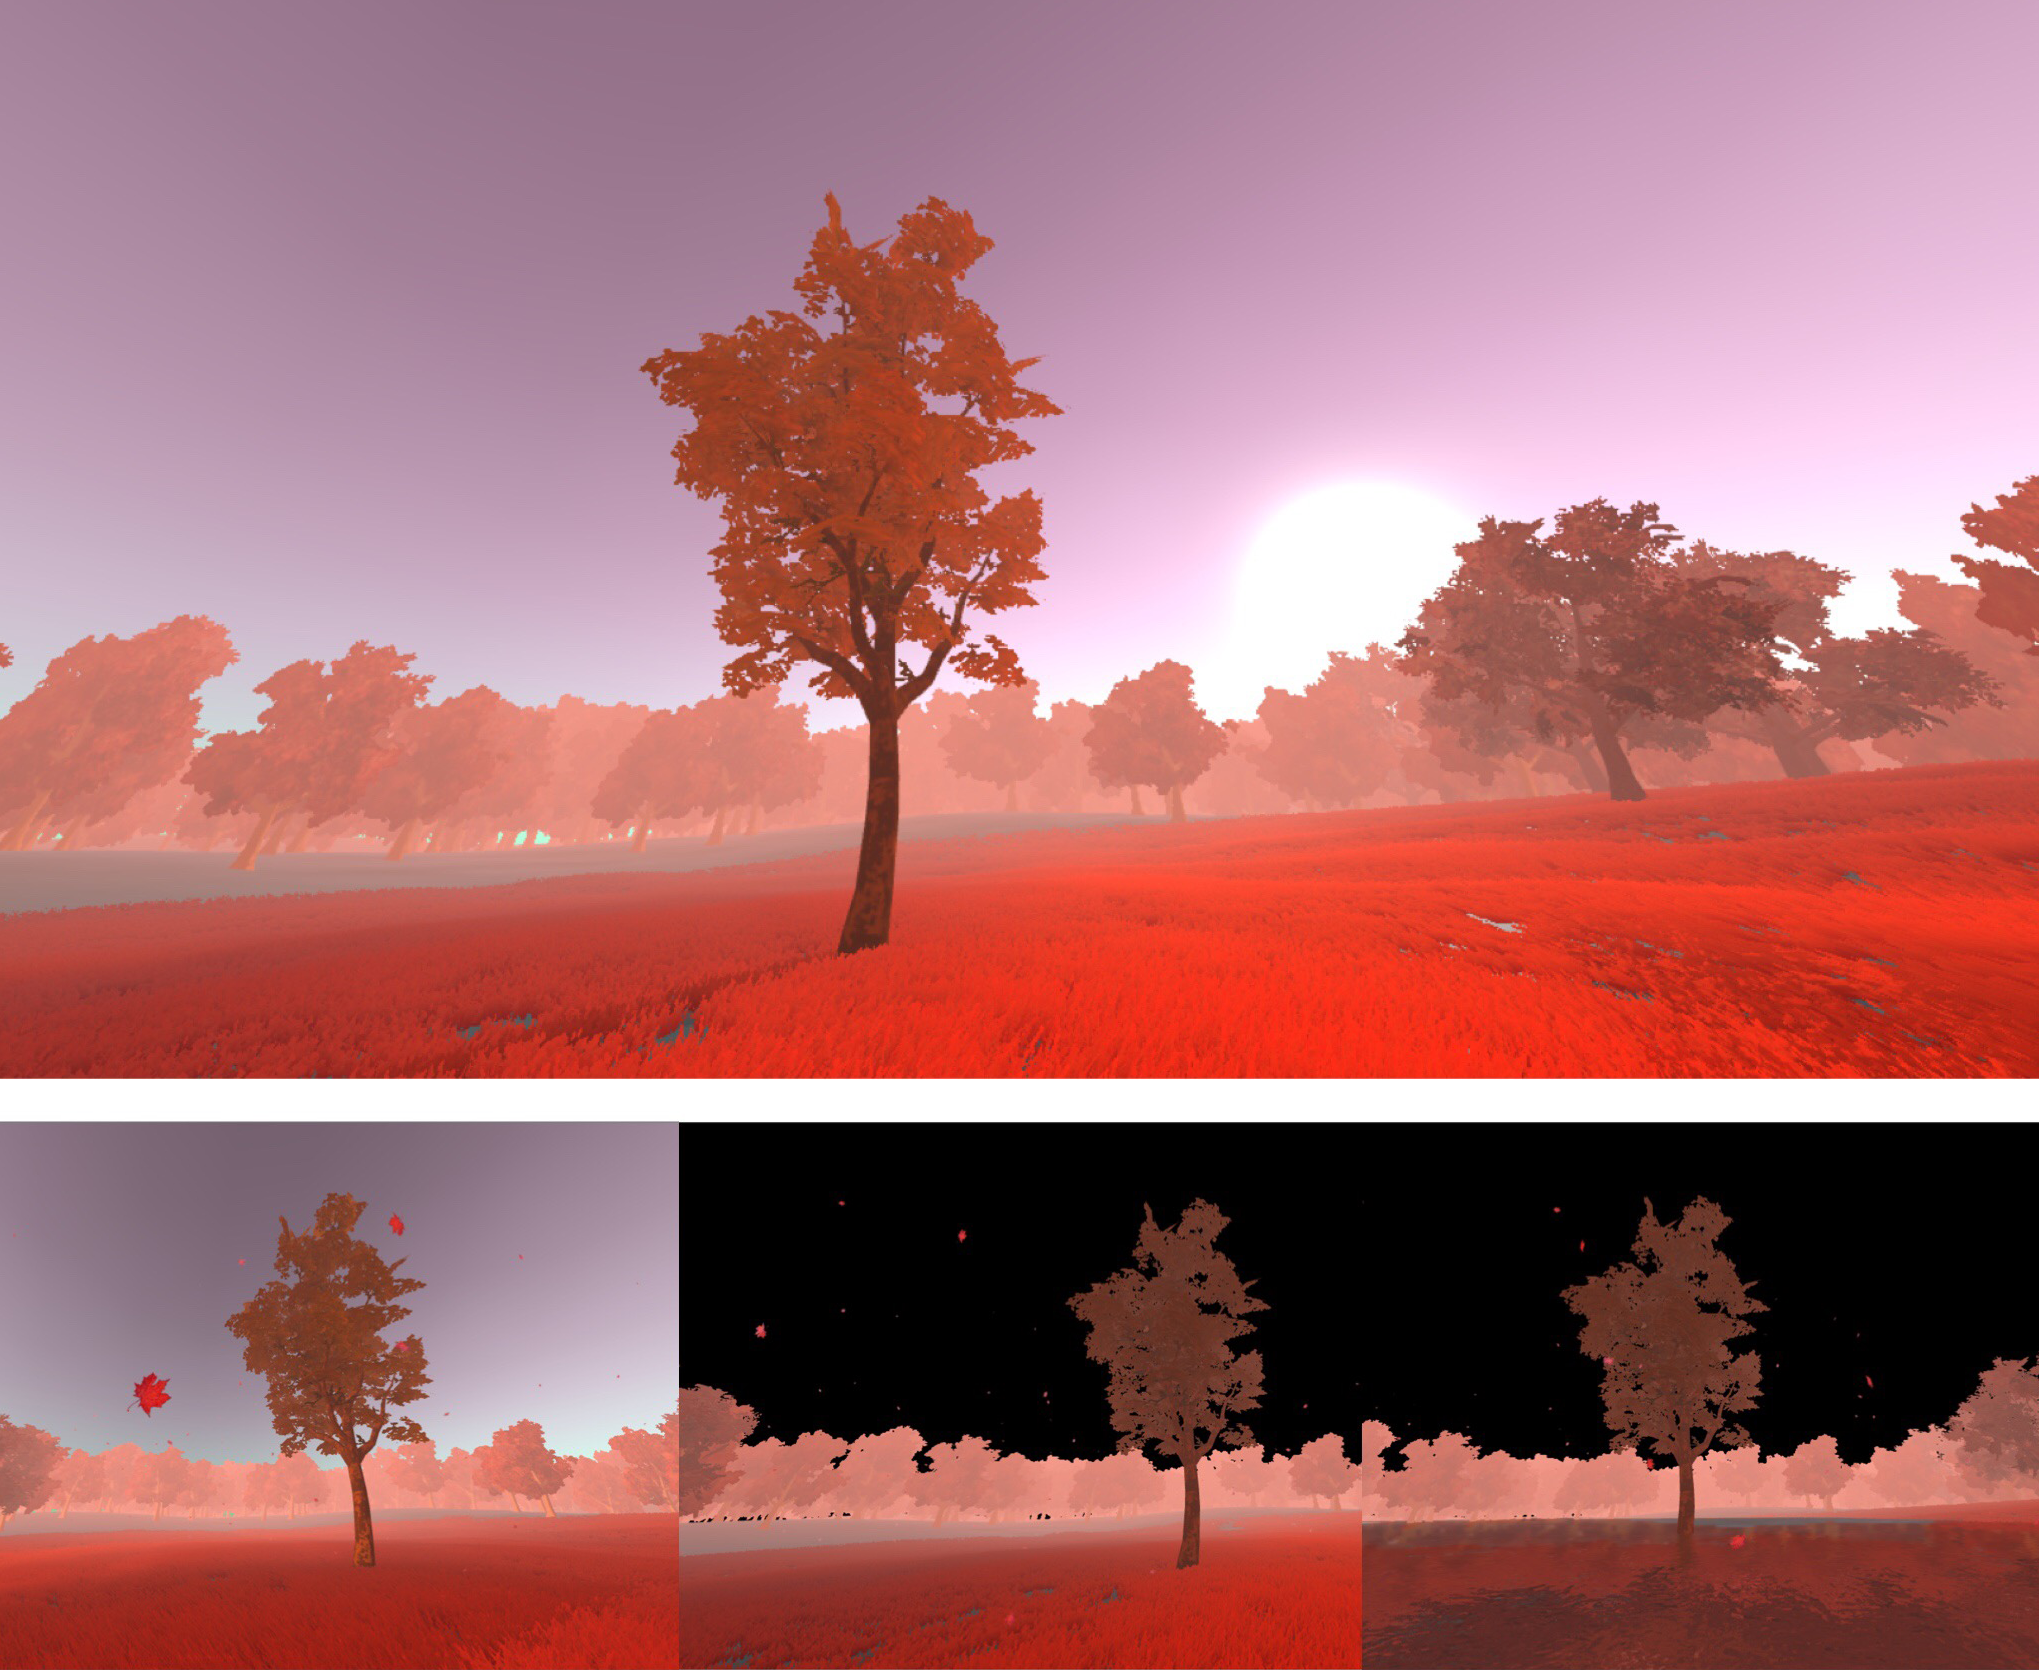 A guided mediation asks users to open themselves to the idea of their nonexistence using the analogy of a tree cycling through seasons. The imagery consists of an open field with a single tree in the foreground and takes on the style of a color film negative. In other words, a world that is both familiar and dissimilar to their own. The world cycles from night, into day, and then back into night. As the meditation brings the user back to their awareness, the world transitions to part two. -